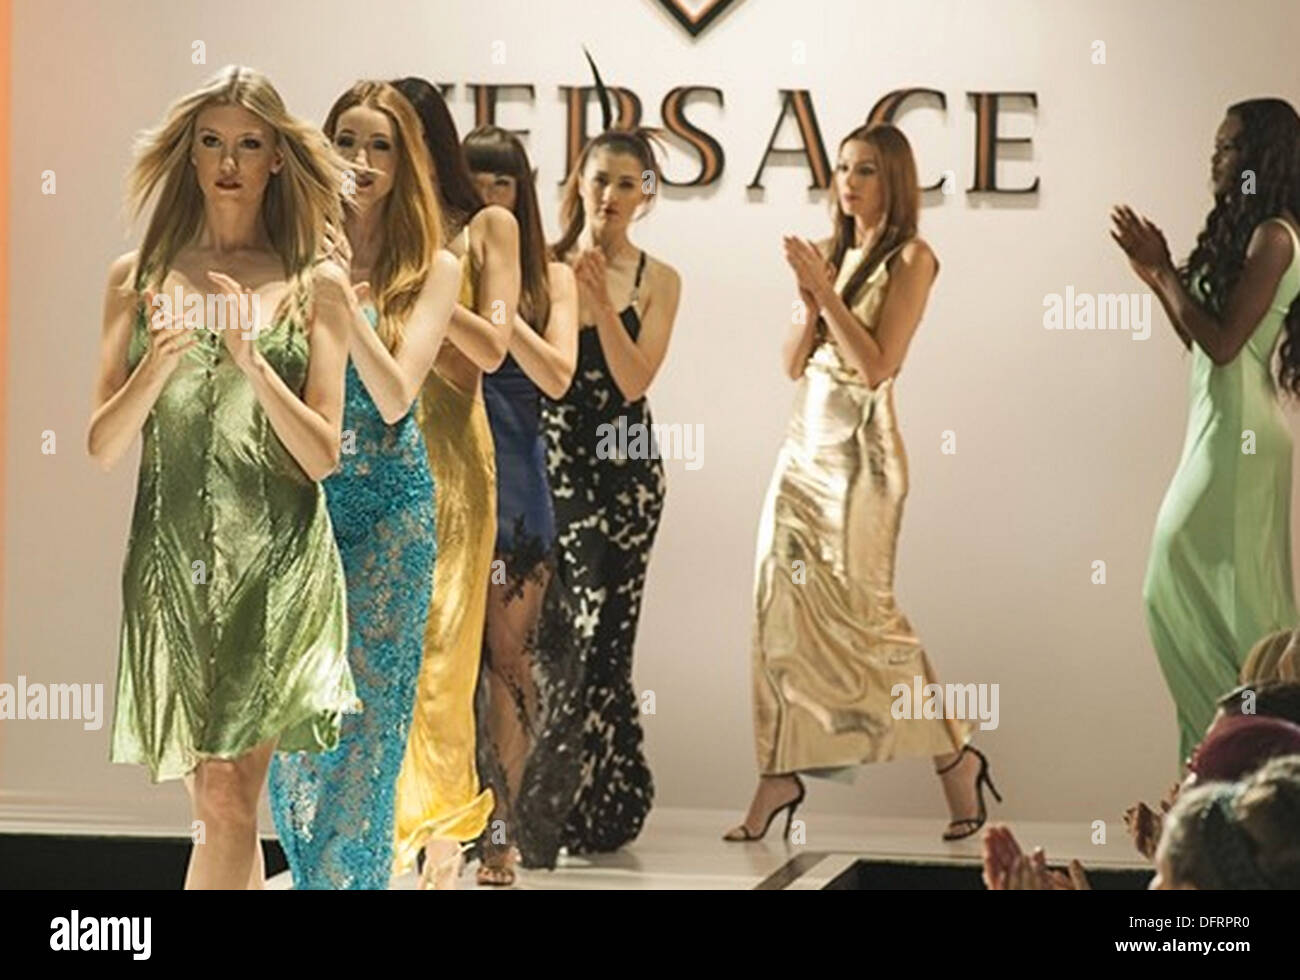 HOUSE OF VERSACE 2013 Lifetime film - Stock Image